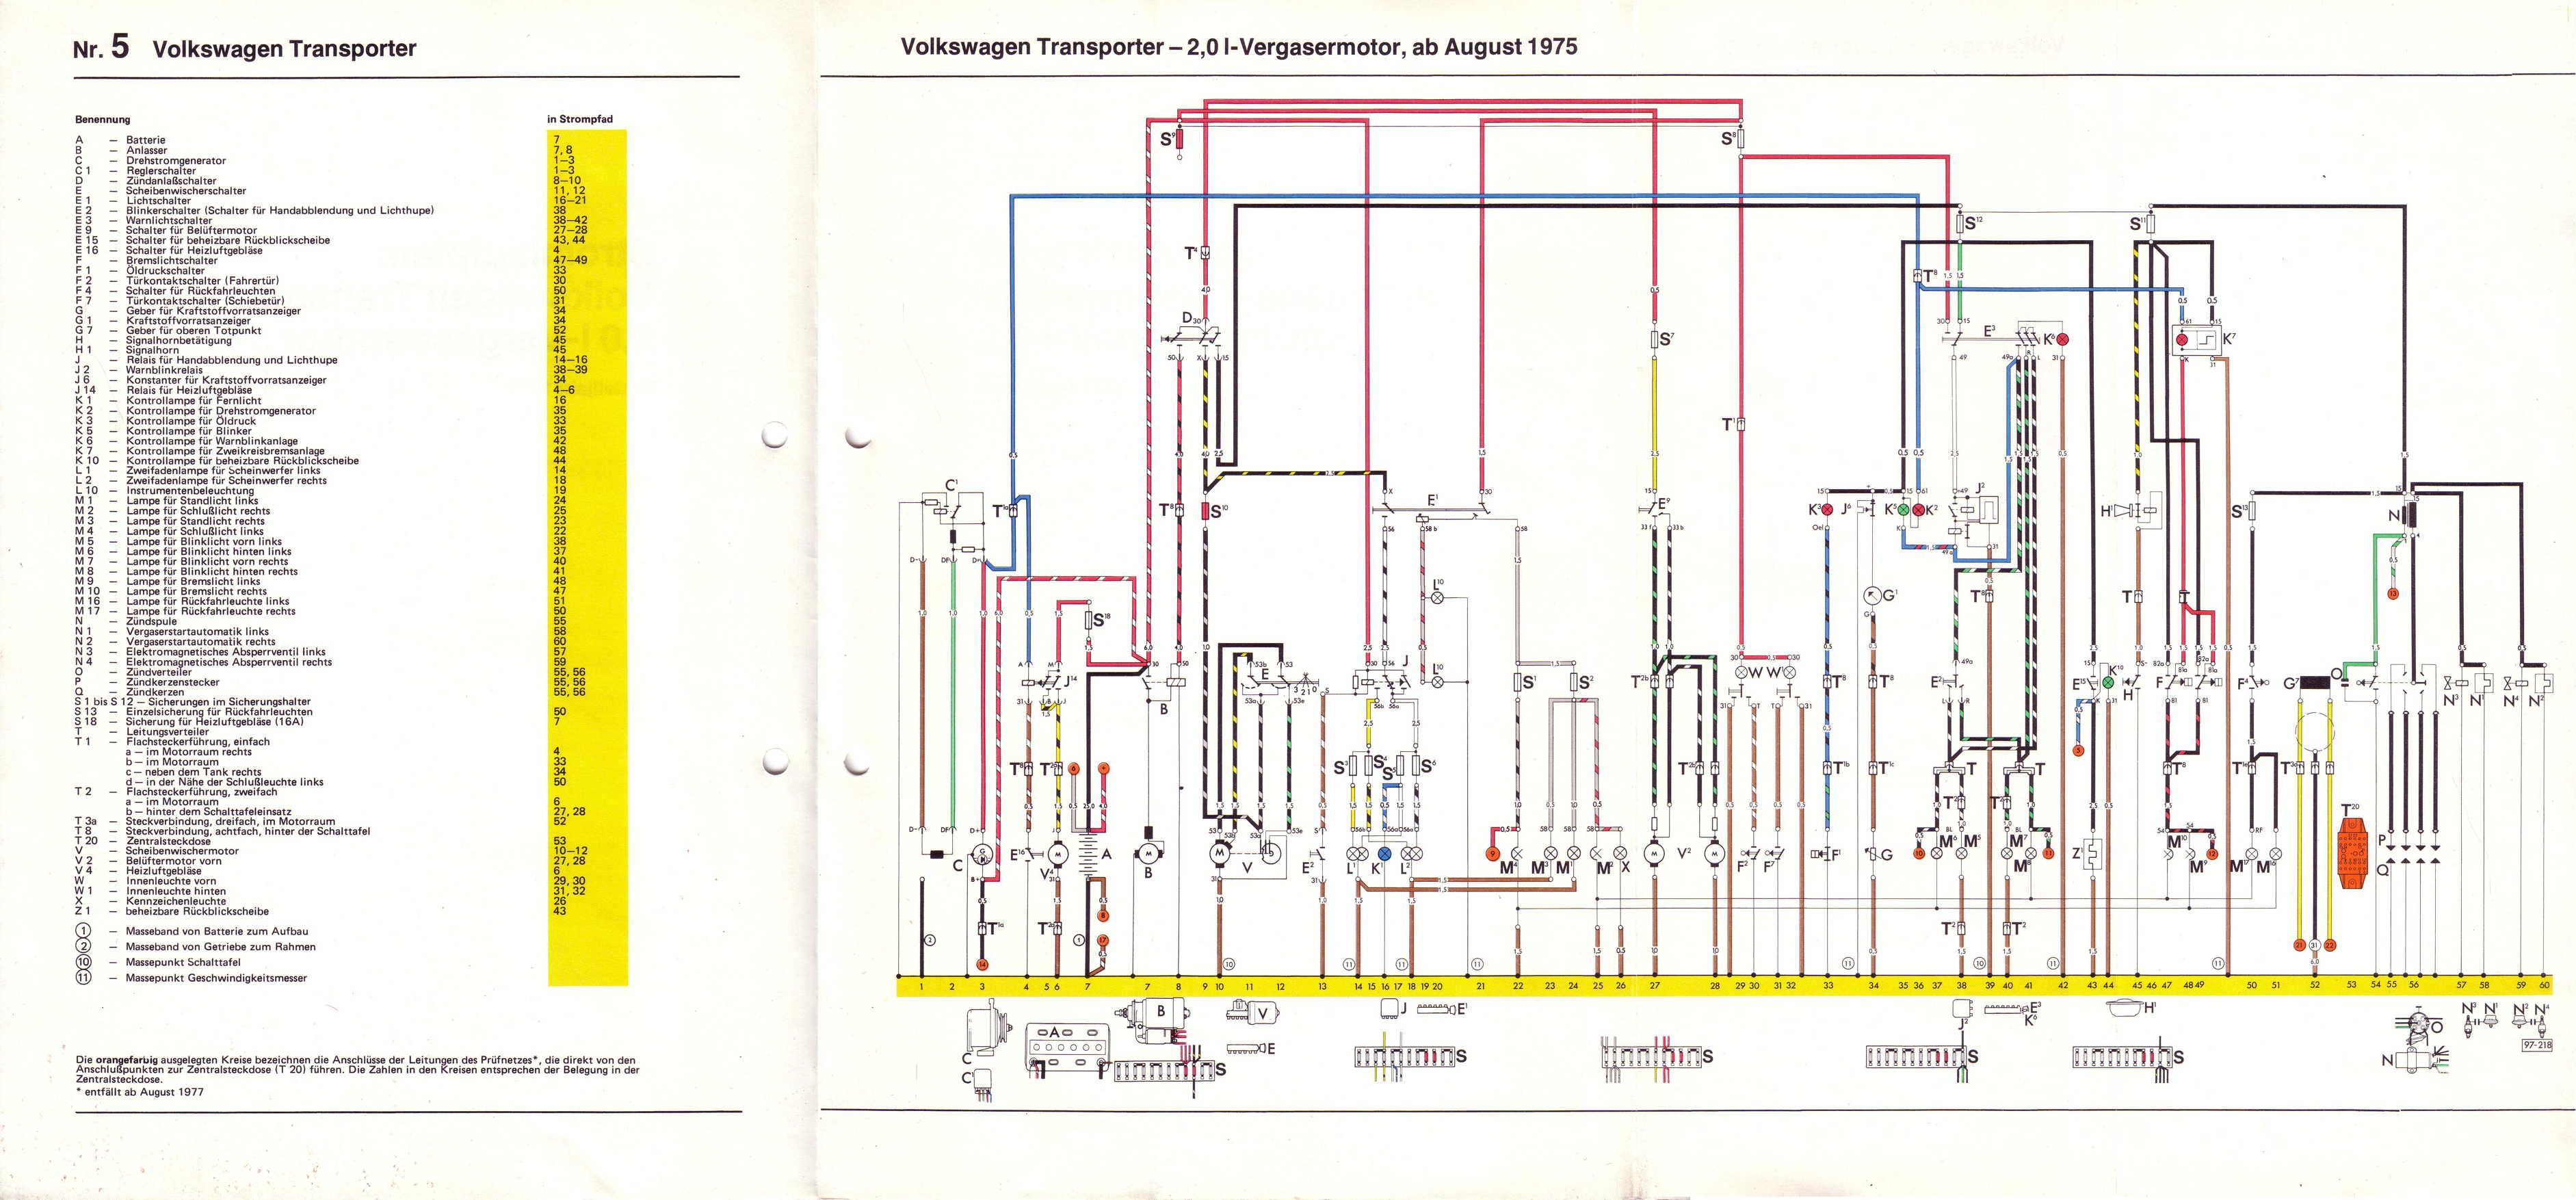 1975 08 vw t2 2l wiring diagram?resize\\\\\\\\\\\\\\\\\\\\\\\\\\\\\\\\\\\\\\\\\\\\\\\=665%2C310 gfs retrotron wiring diagrams telecaster wiring diagrams gfs crunchy rails wiring diagram at eliteediting.co